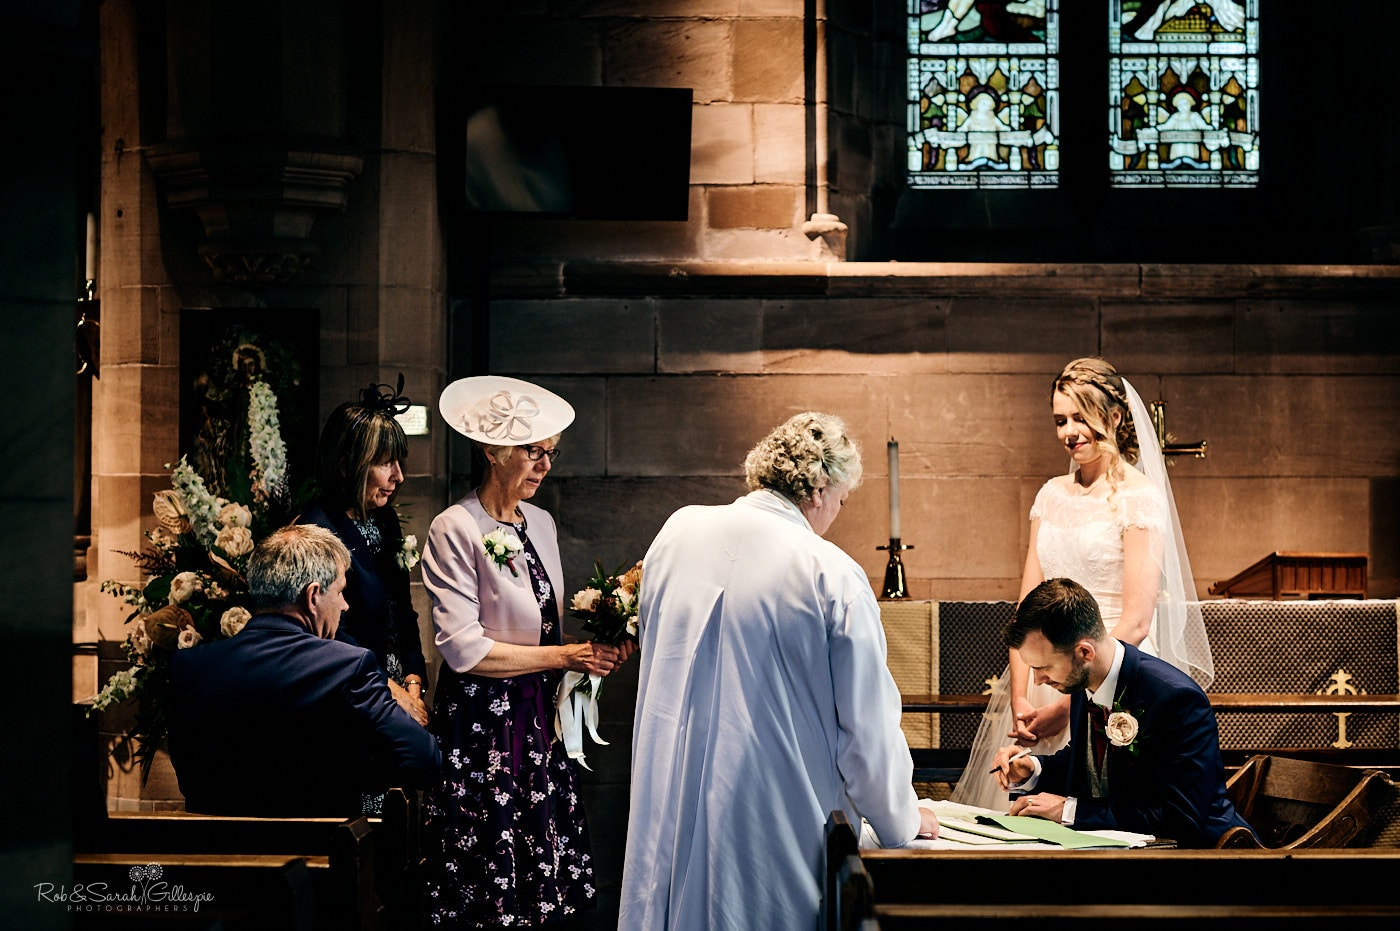 Bride and groom sign marriage register during church service at St Peter's Pedmore